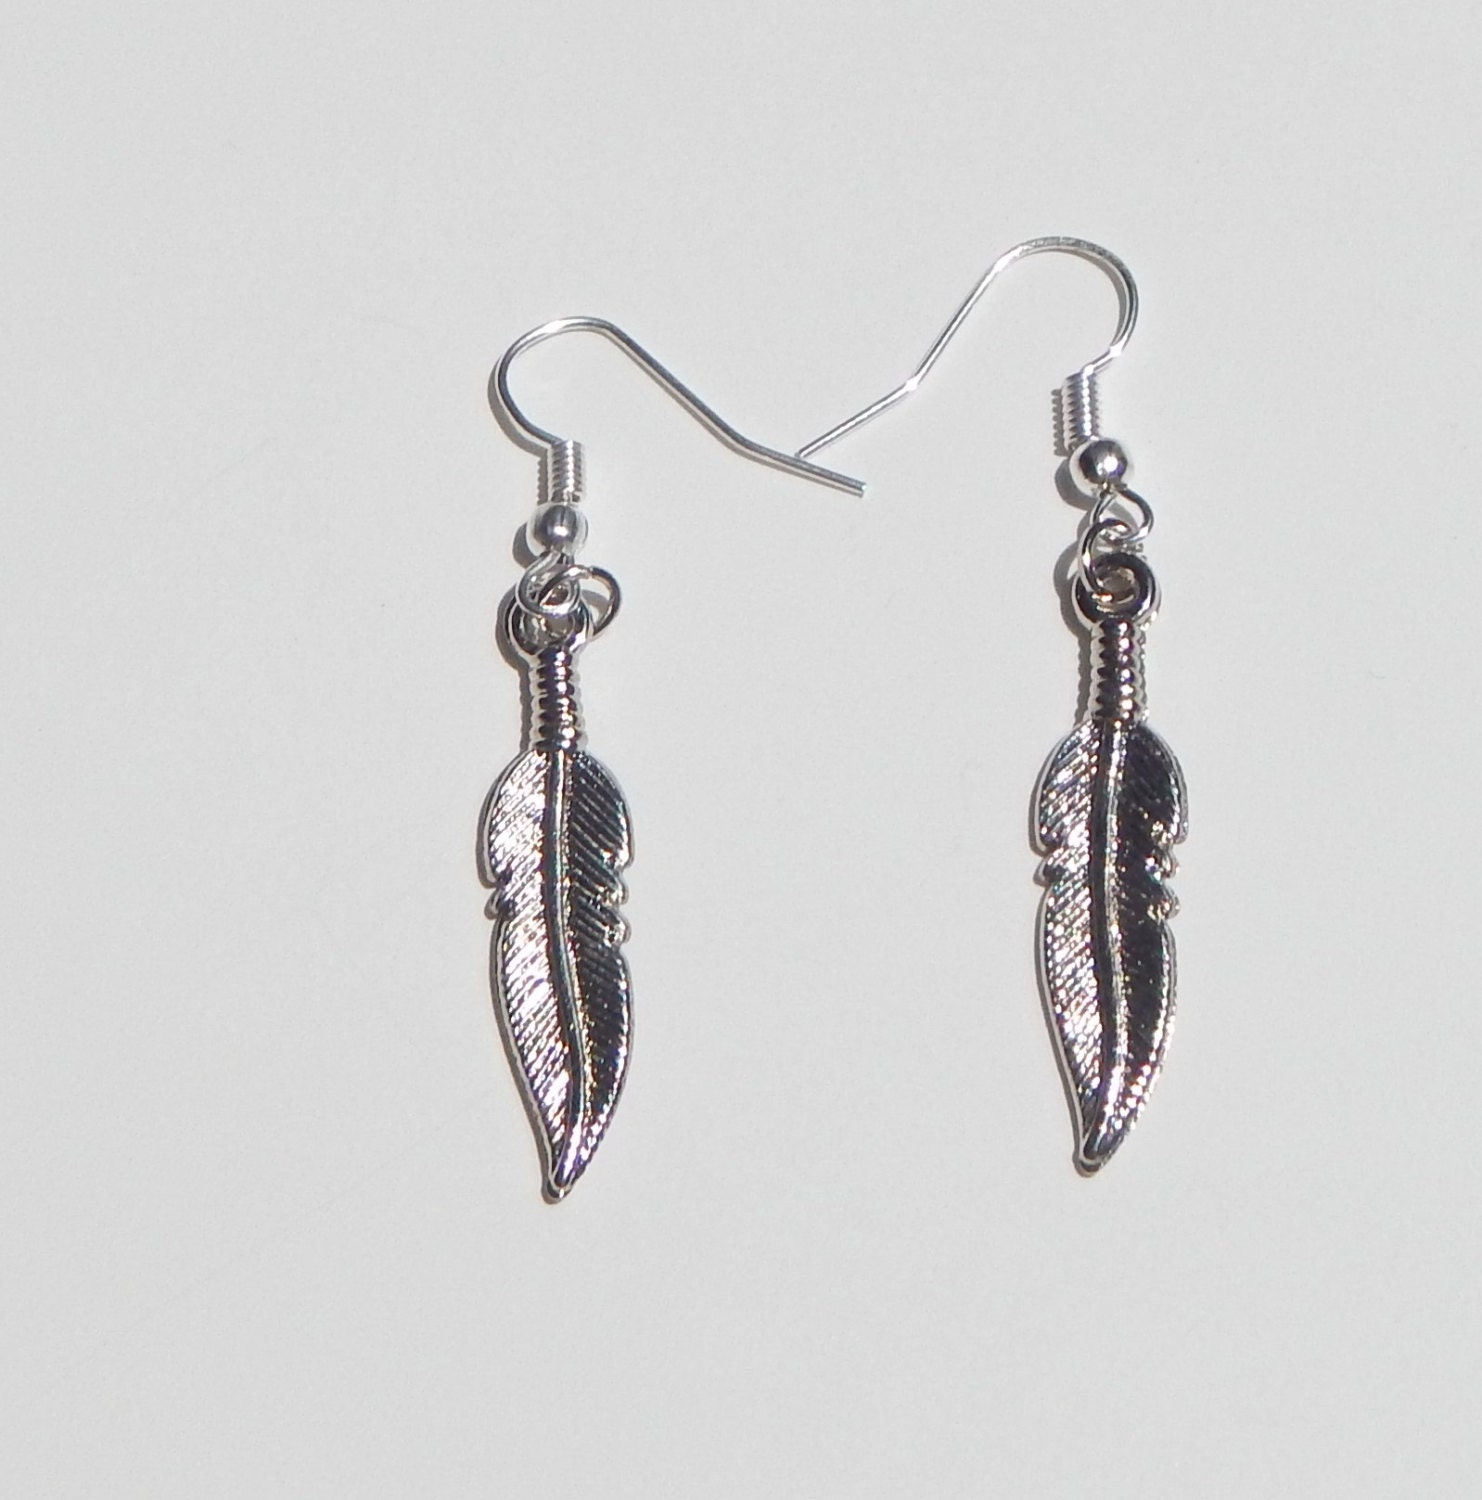 leaf earrings silver leaf earrings simple earrings